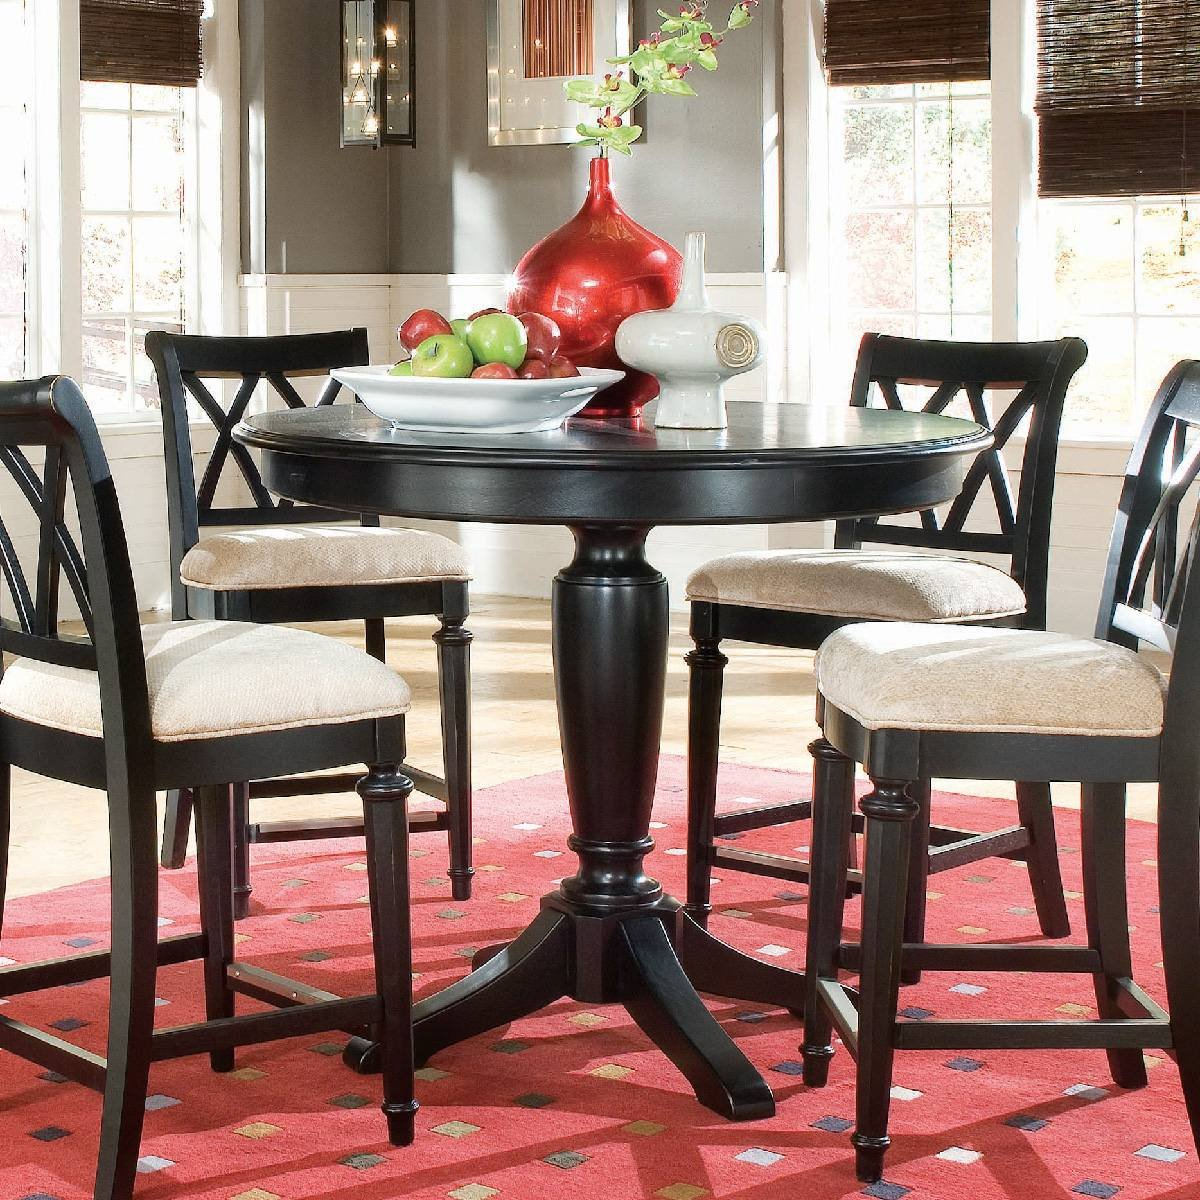 Counter height round table and chairs - Amazon Com American Drew Camden Black Round Counter Height Pedestal Table Tables